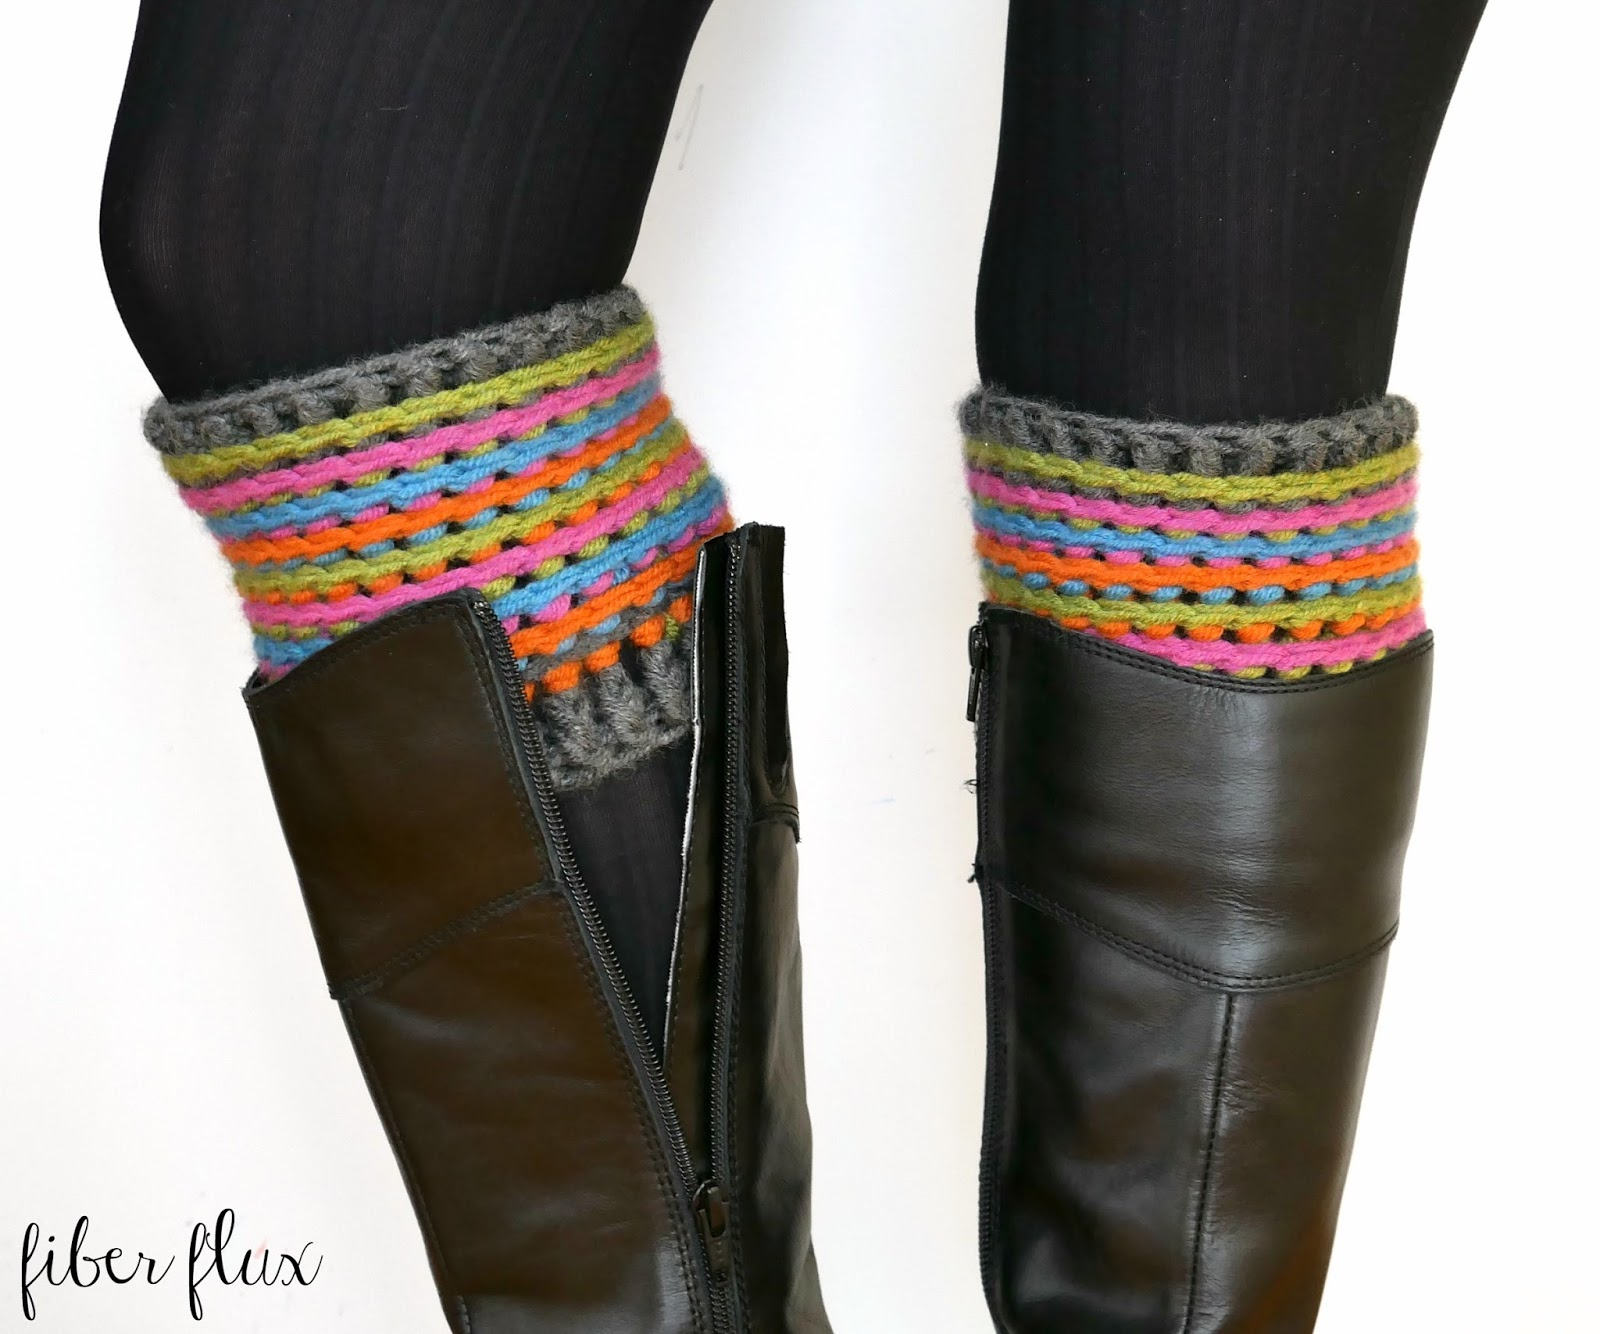 Fiber Flux Free Crochet Patterncelebration Boot Cuffs